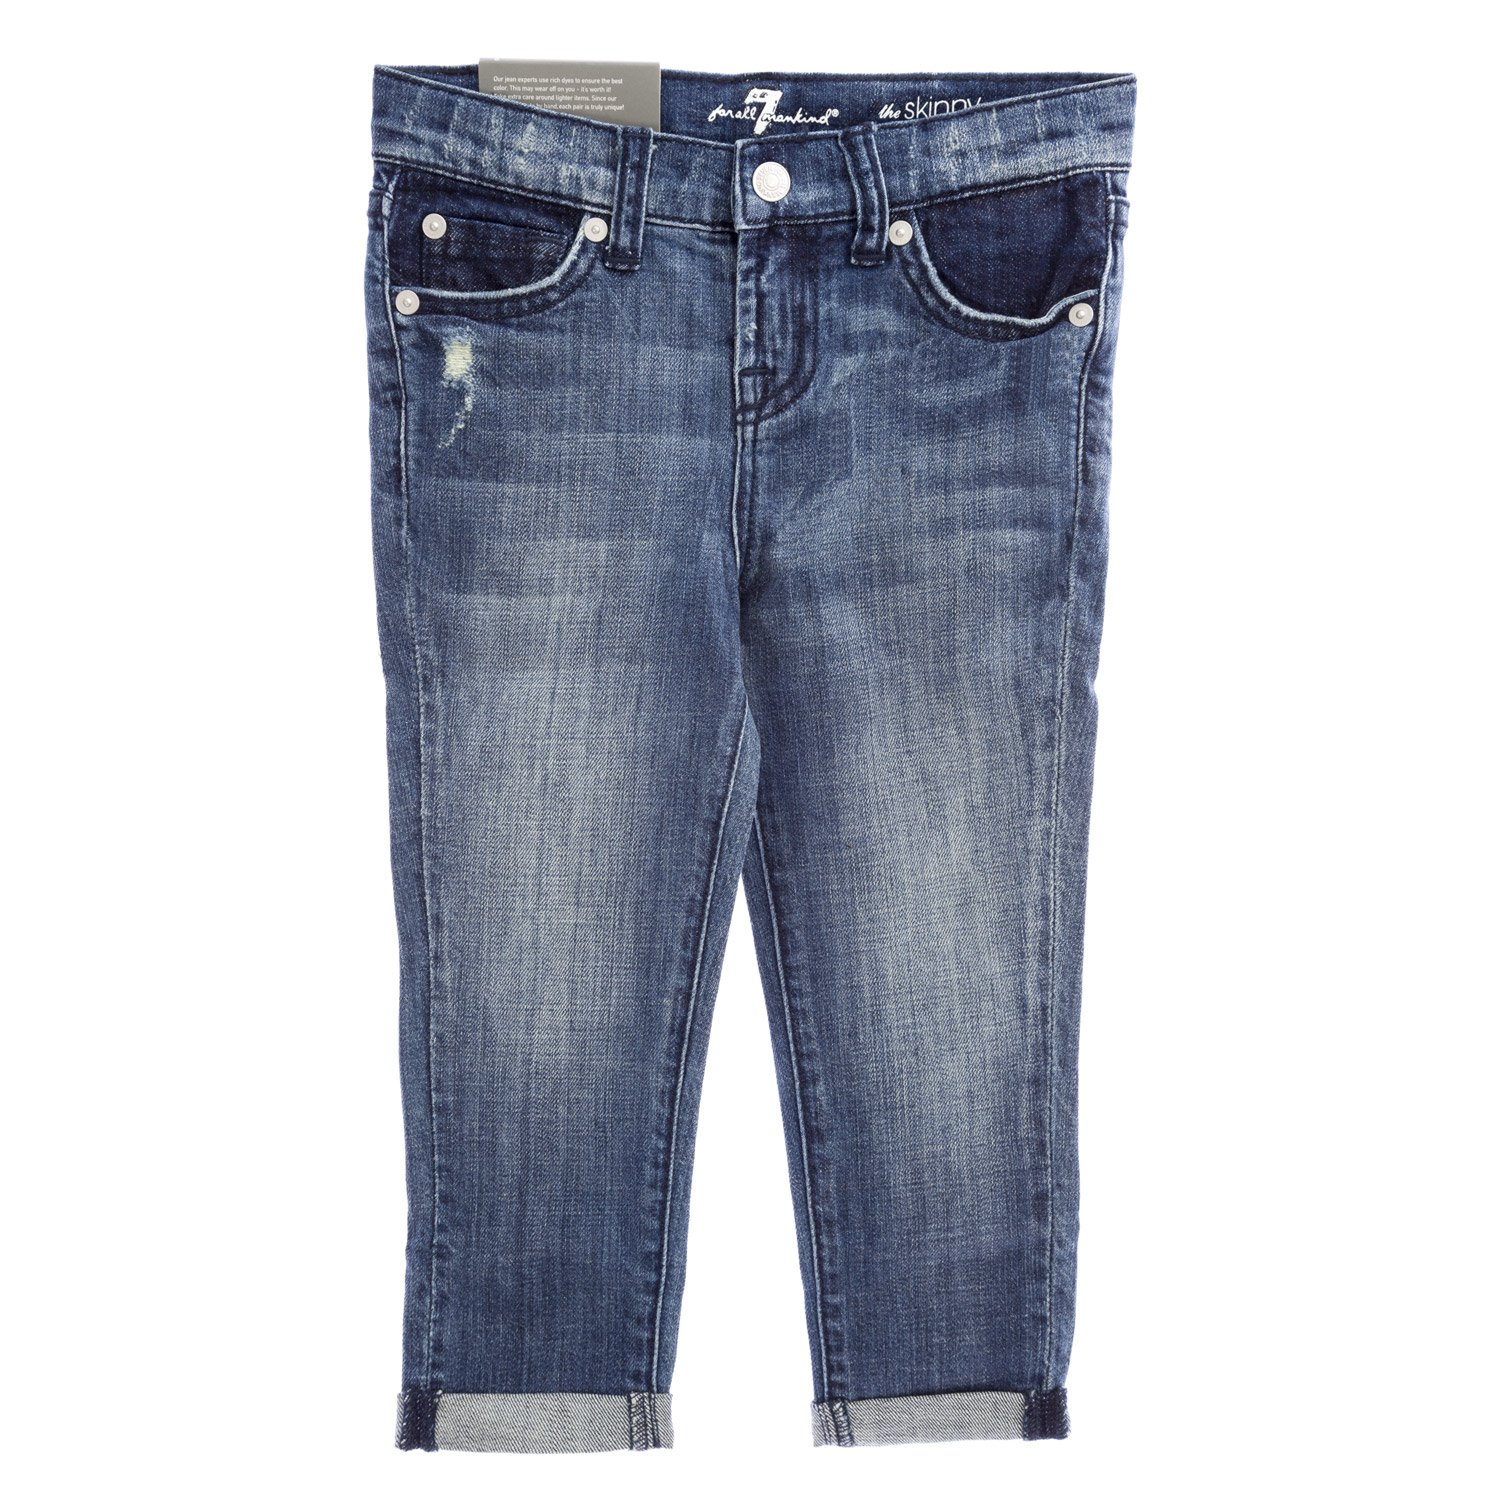 7 for All Mankind Girls The Skinny Crop & Roll Jeans, 6X Sardina Lt. Heritage